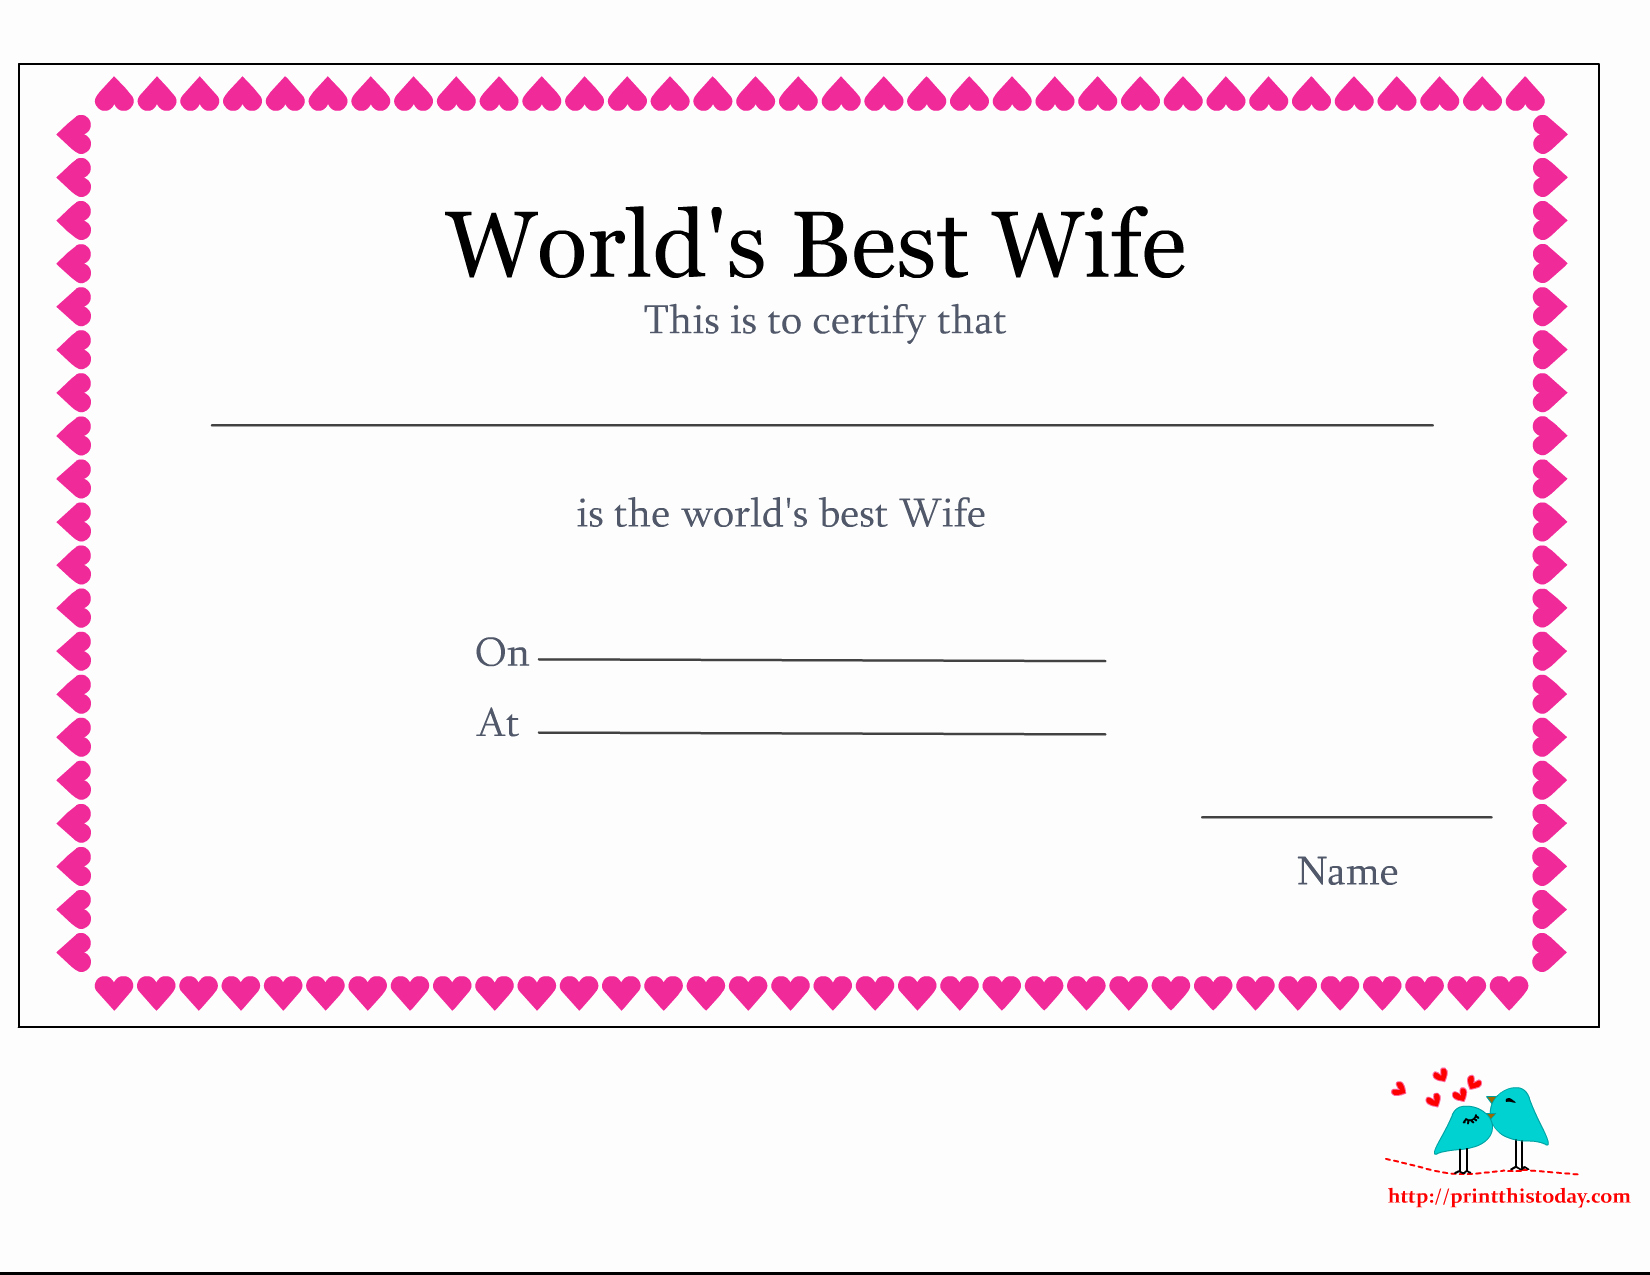 Best Friend Of the Year Award Beautiful Free Printable World S Best Wife Certificates